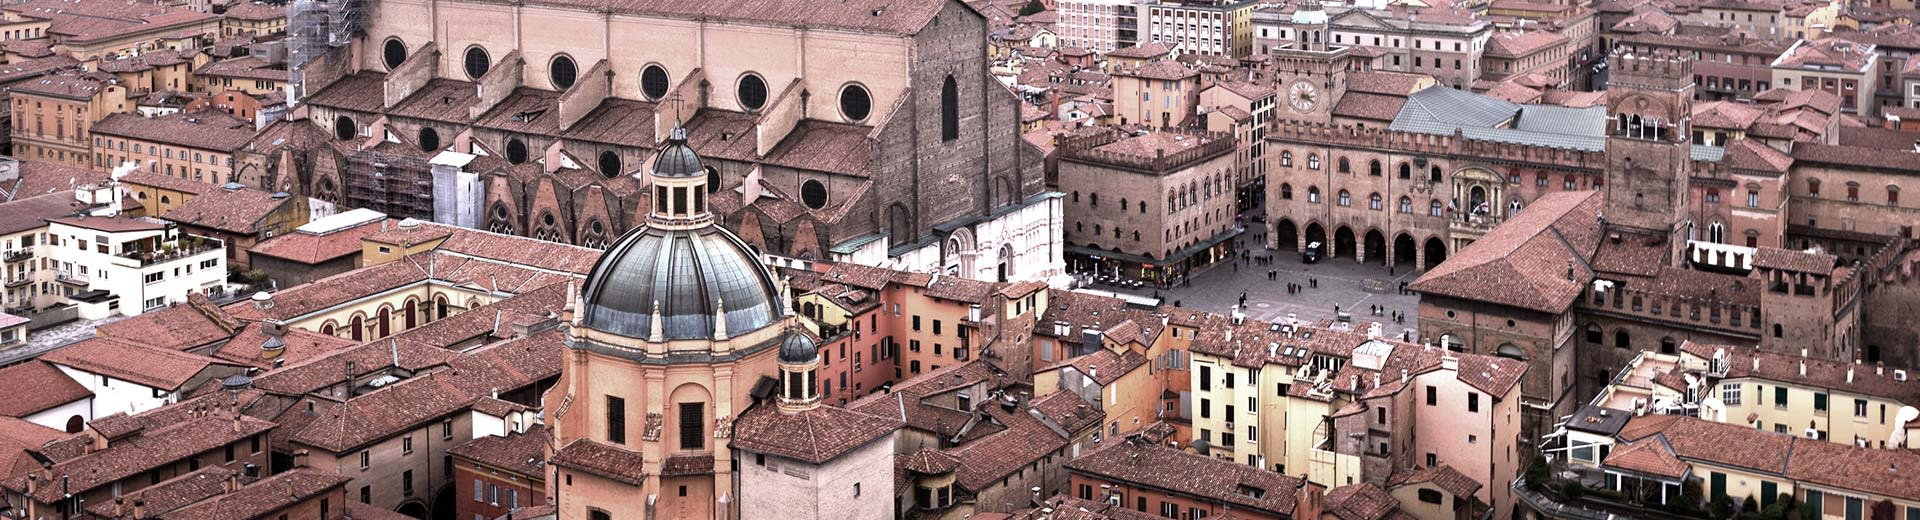 Birds eye view of Bologna city center with the chapel in the center